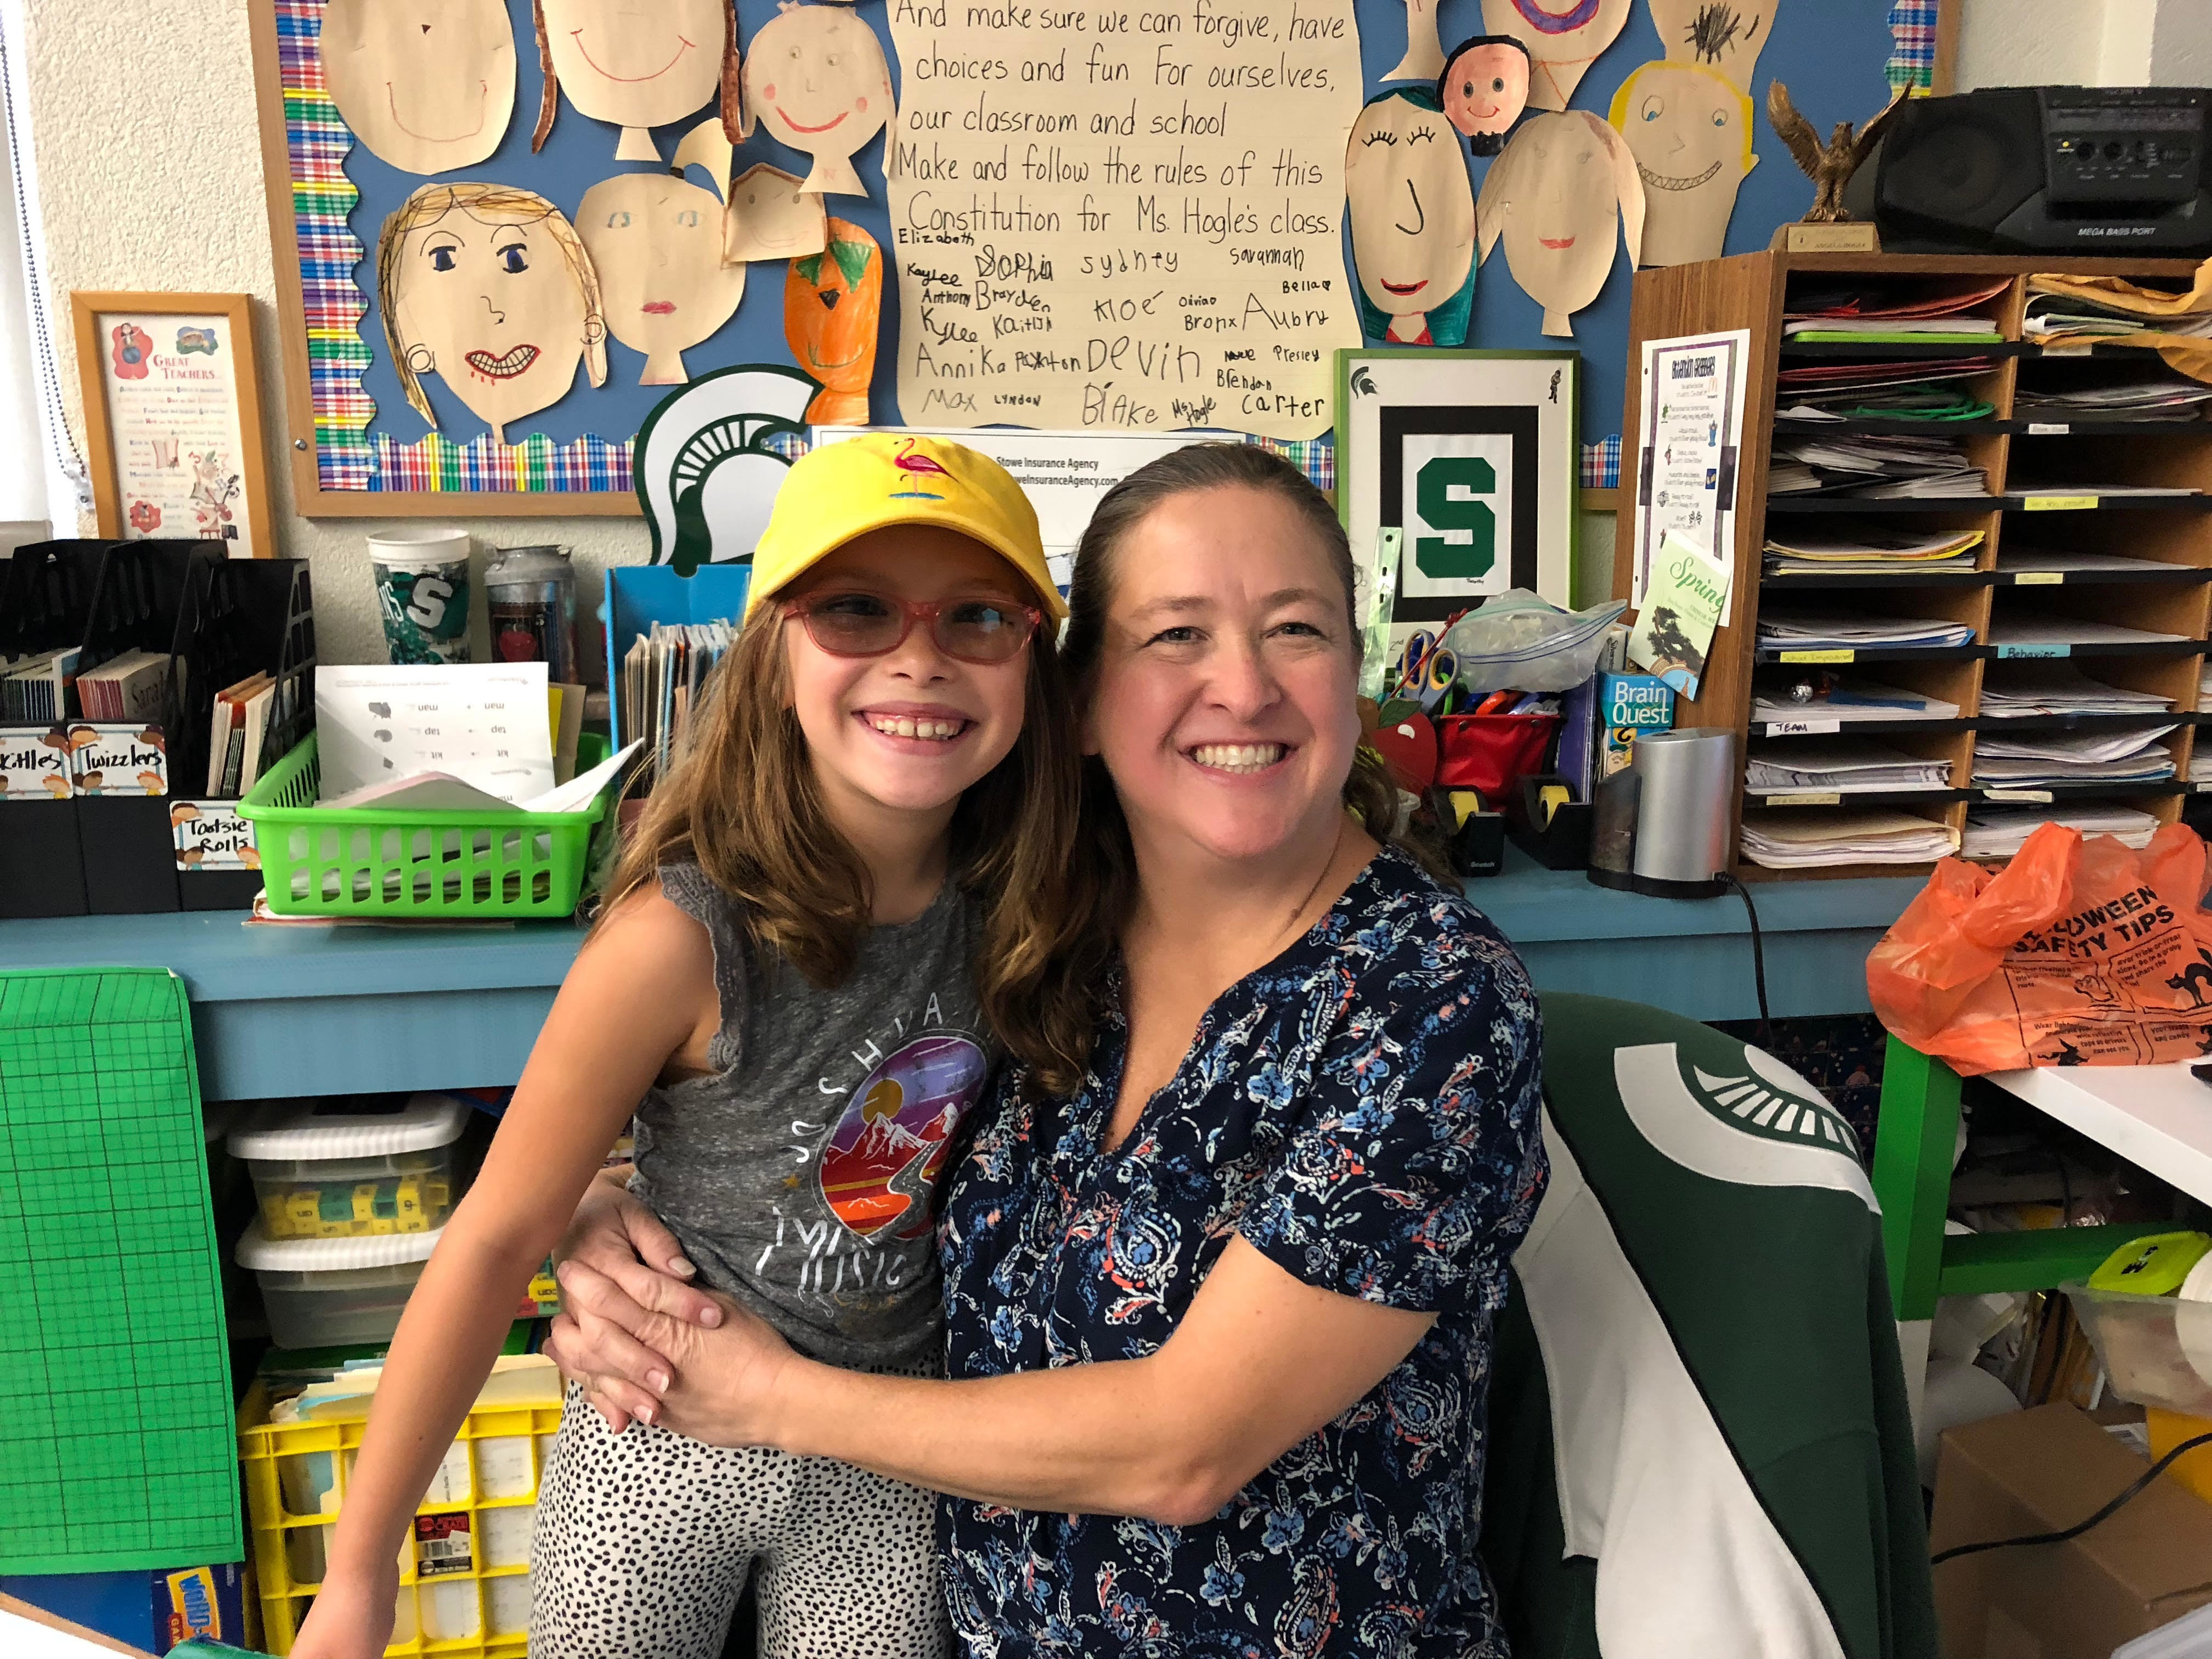 Mrs. Hogle and her student.